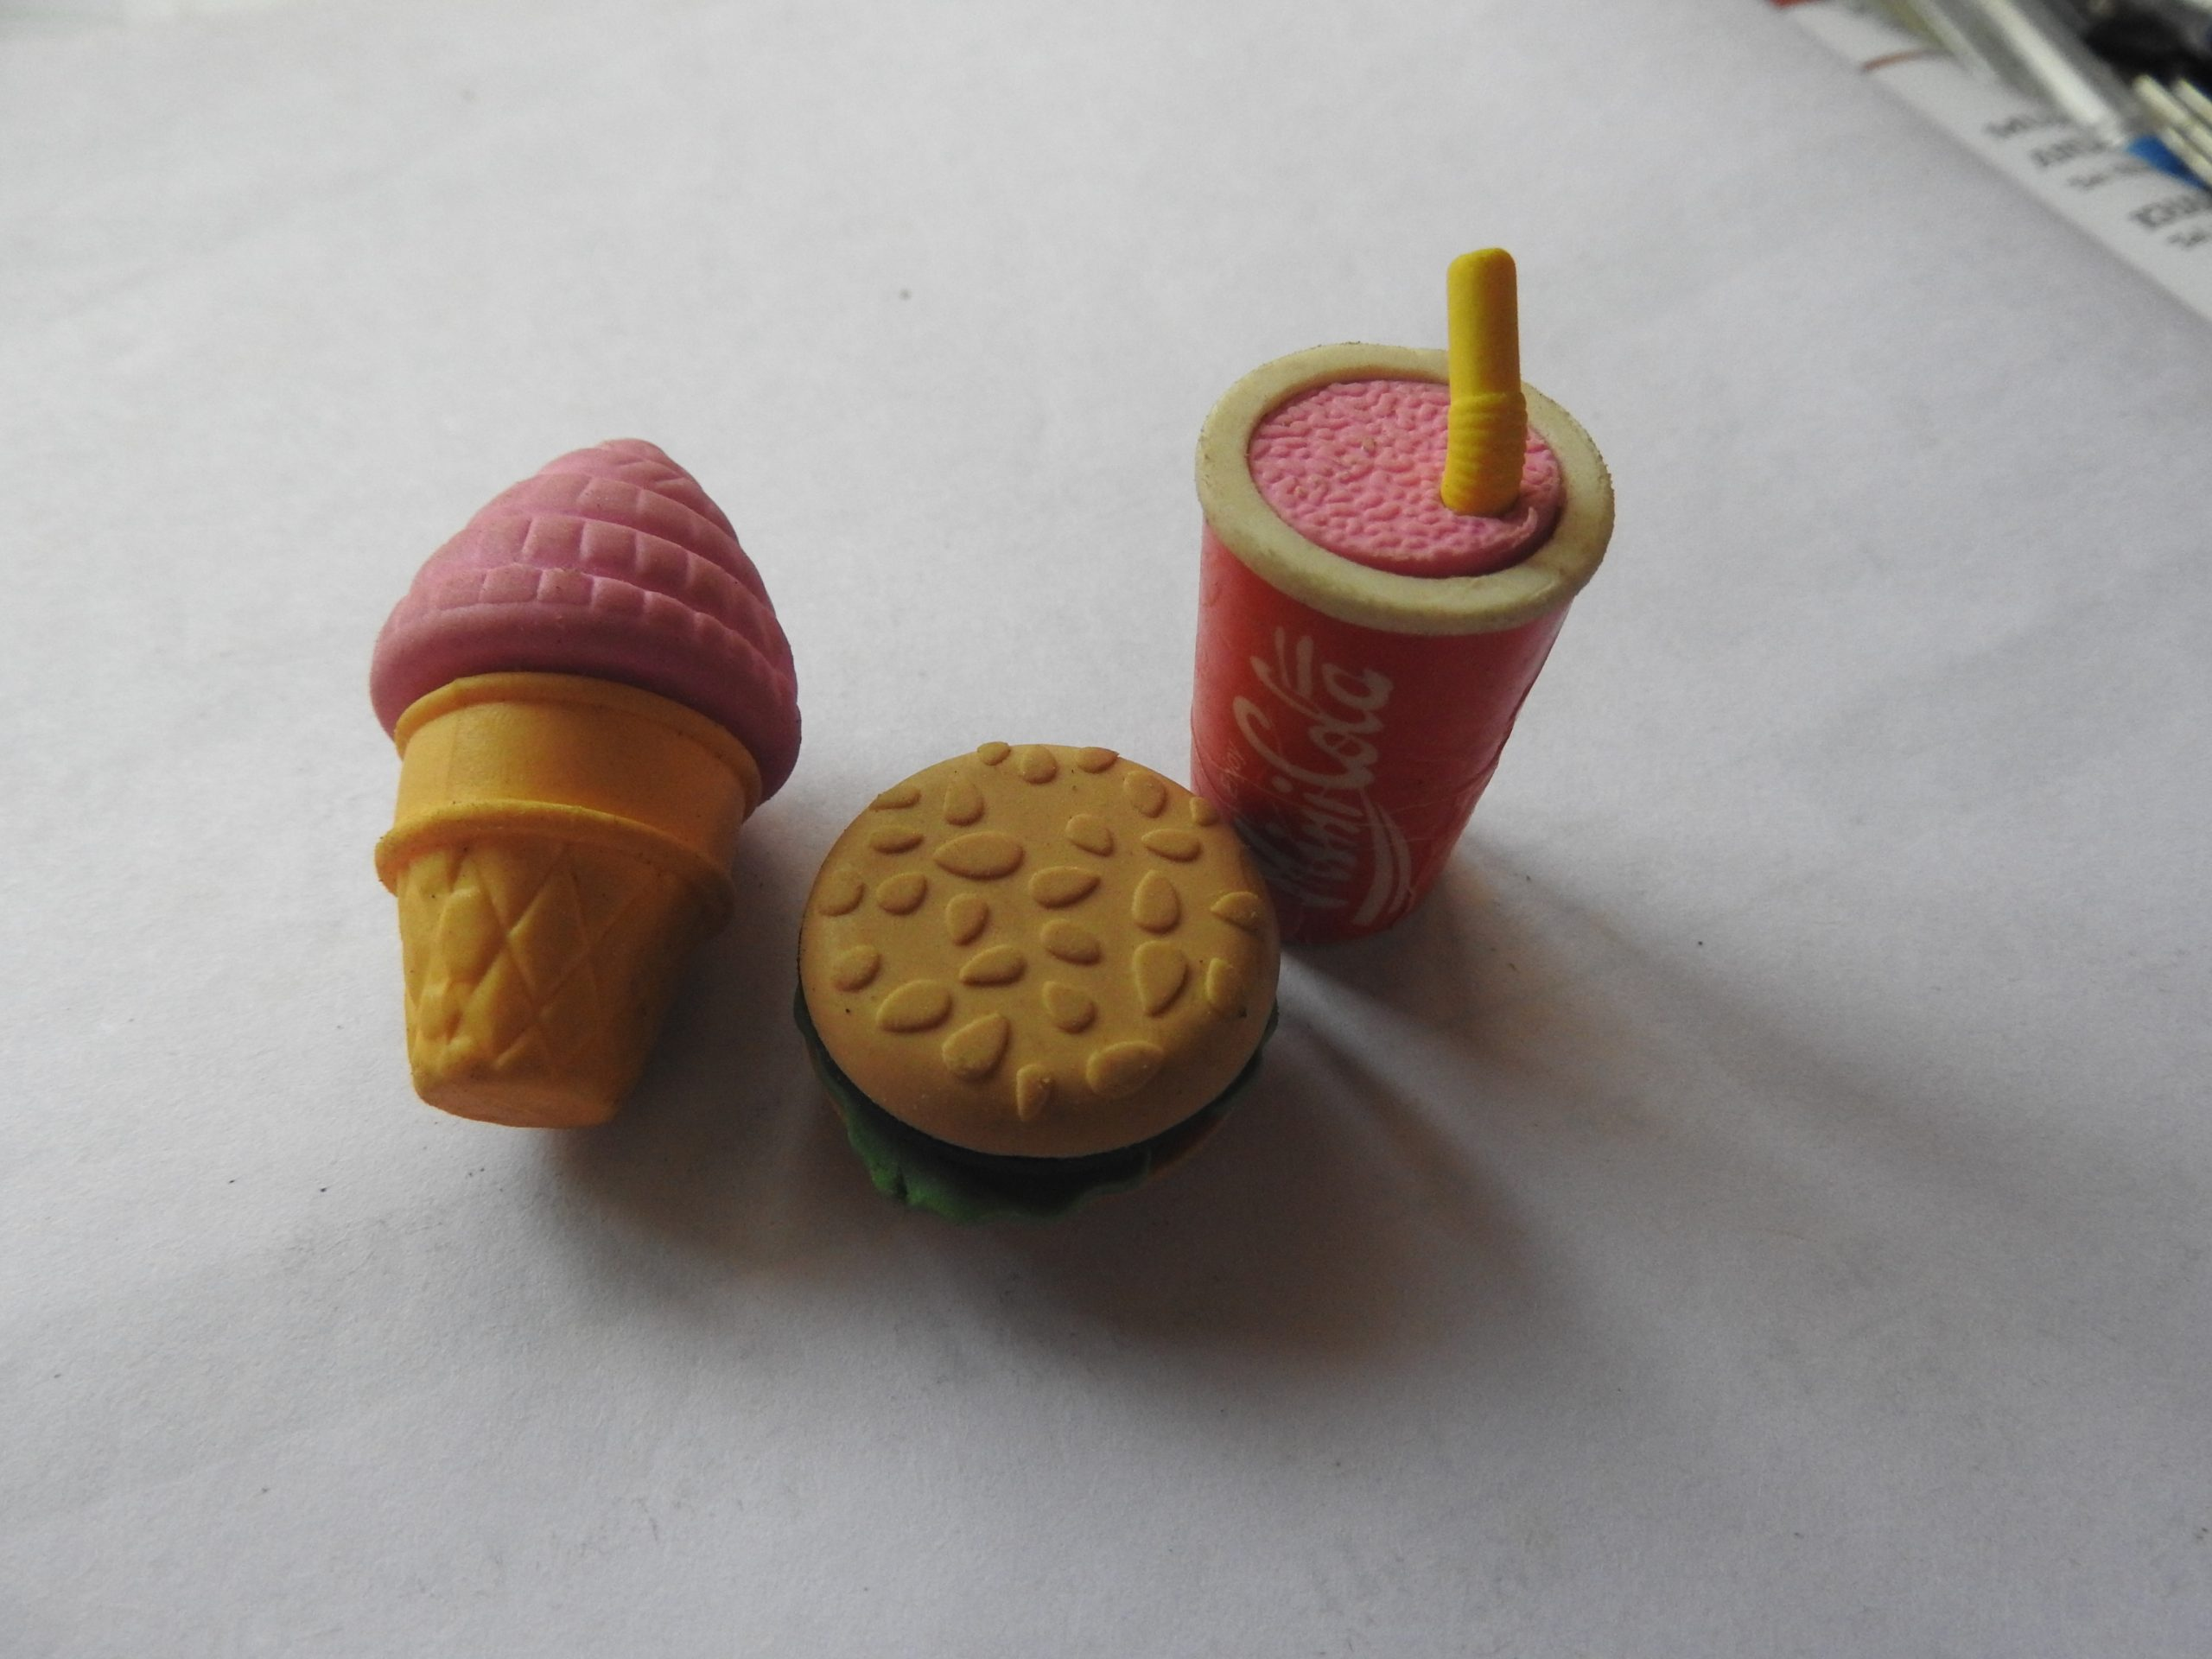 Eraser as food items